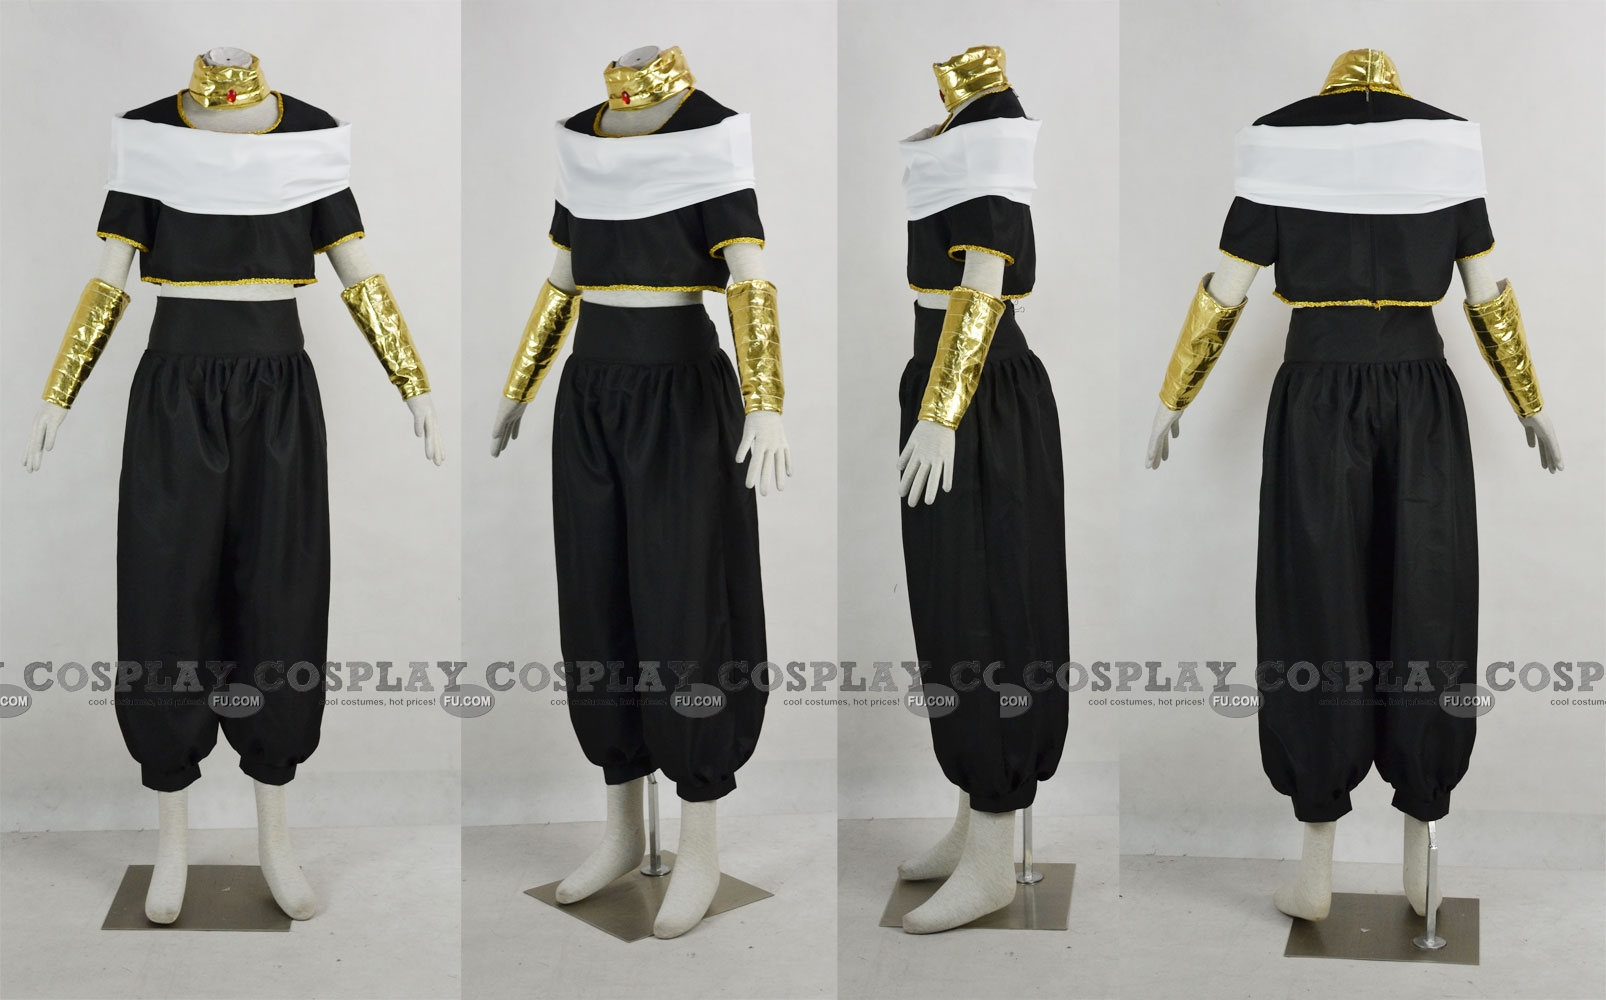 Judal Cosplay Costume from Magi